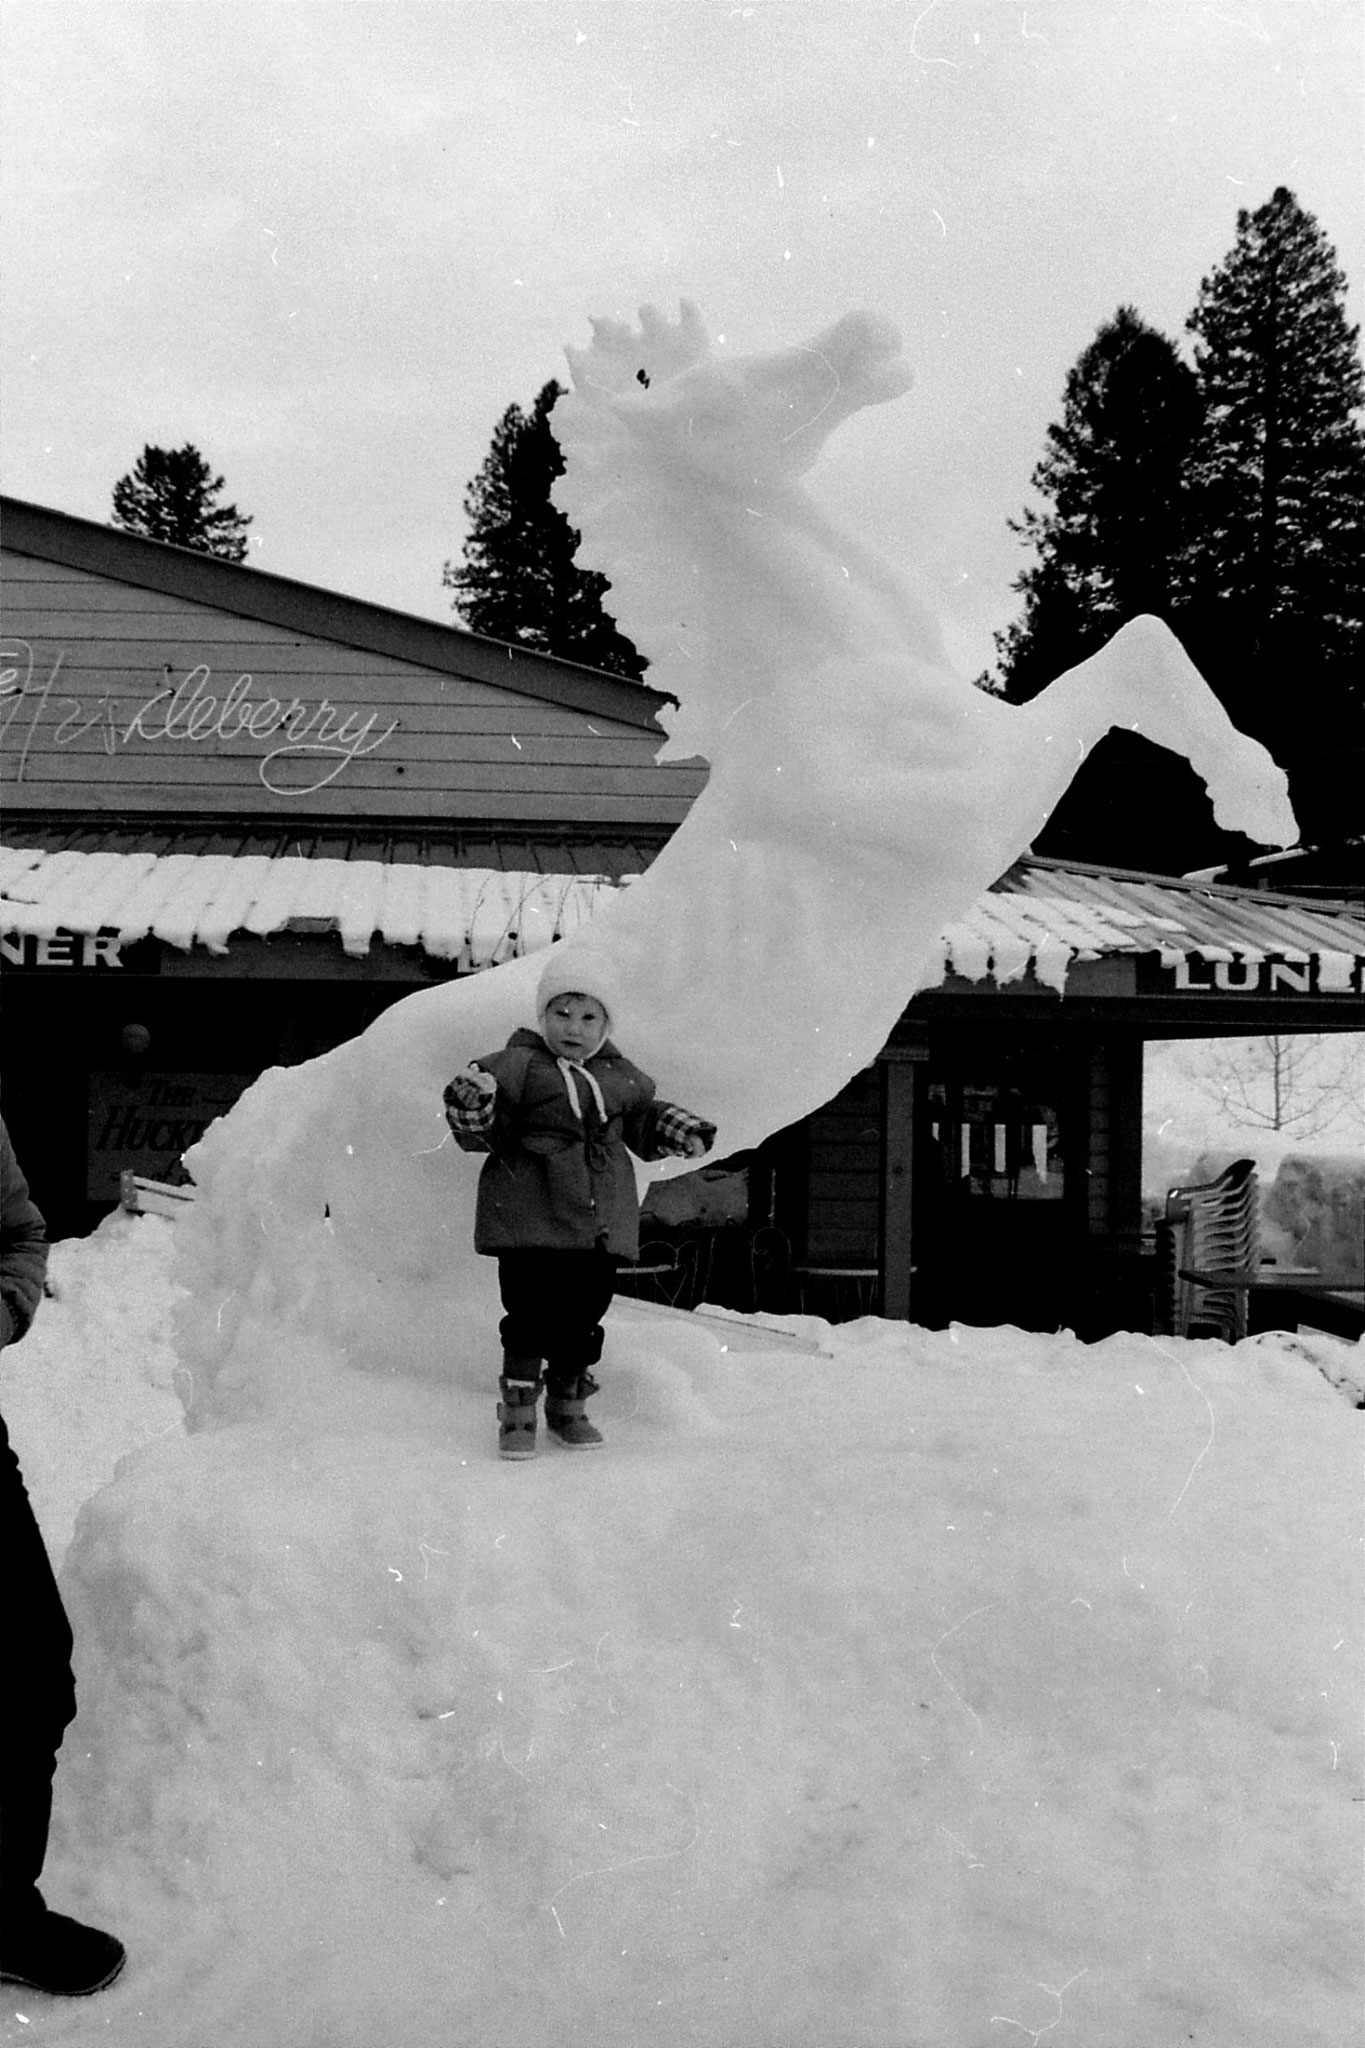 2/2/1991: 22: McCall Ice Festival